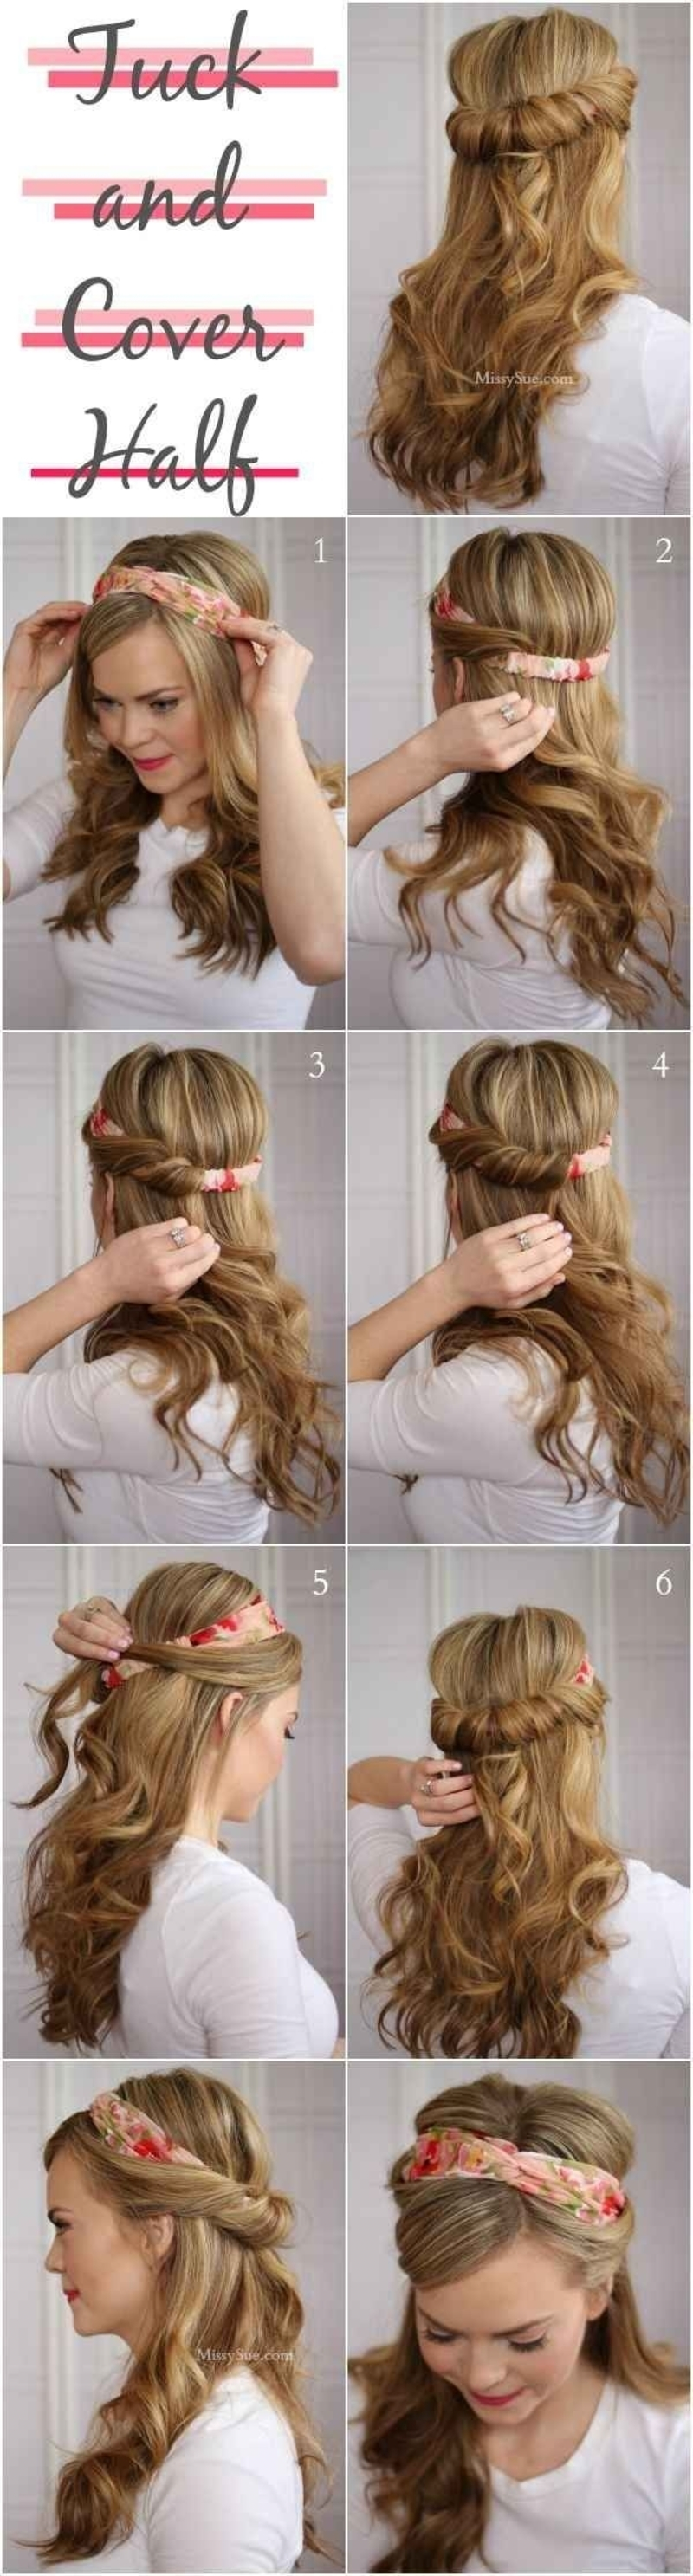 gorgeous hair styles for lazy girls like me health and